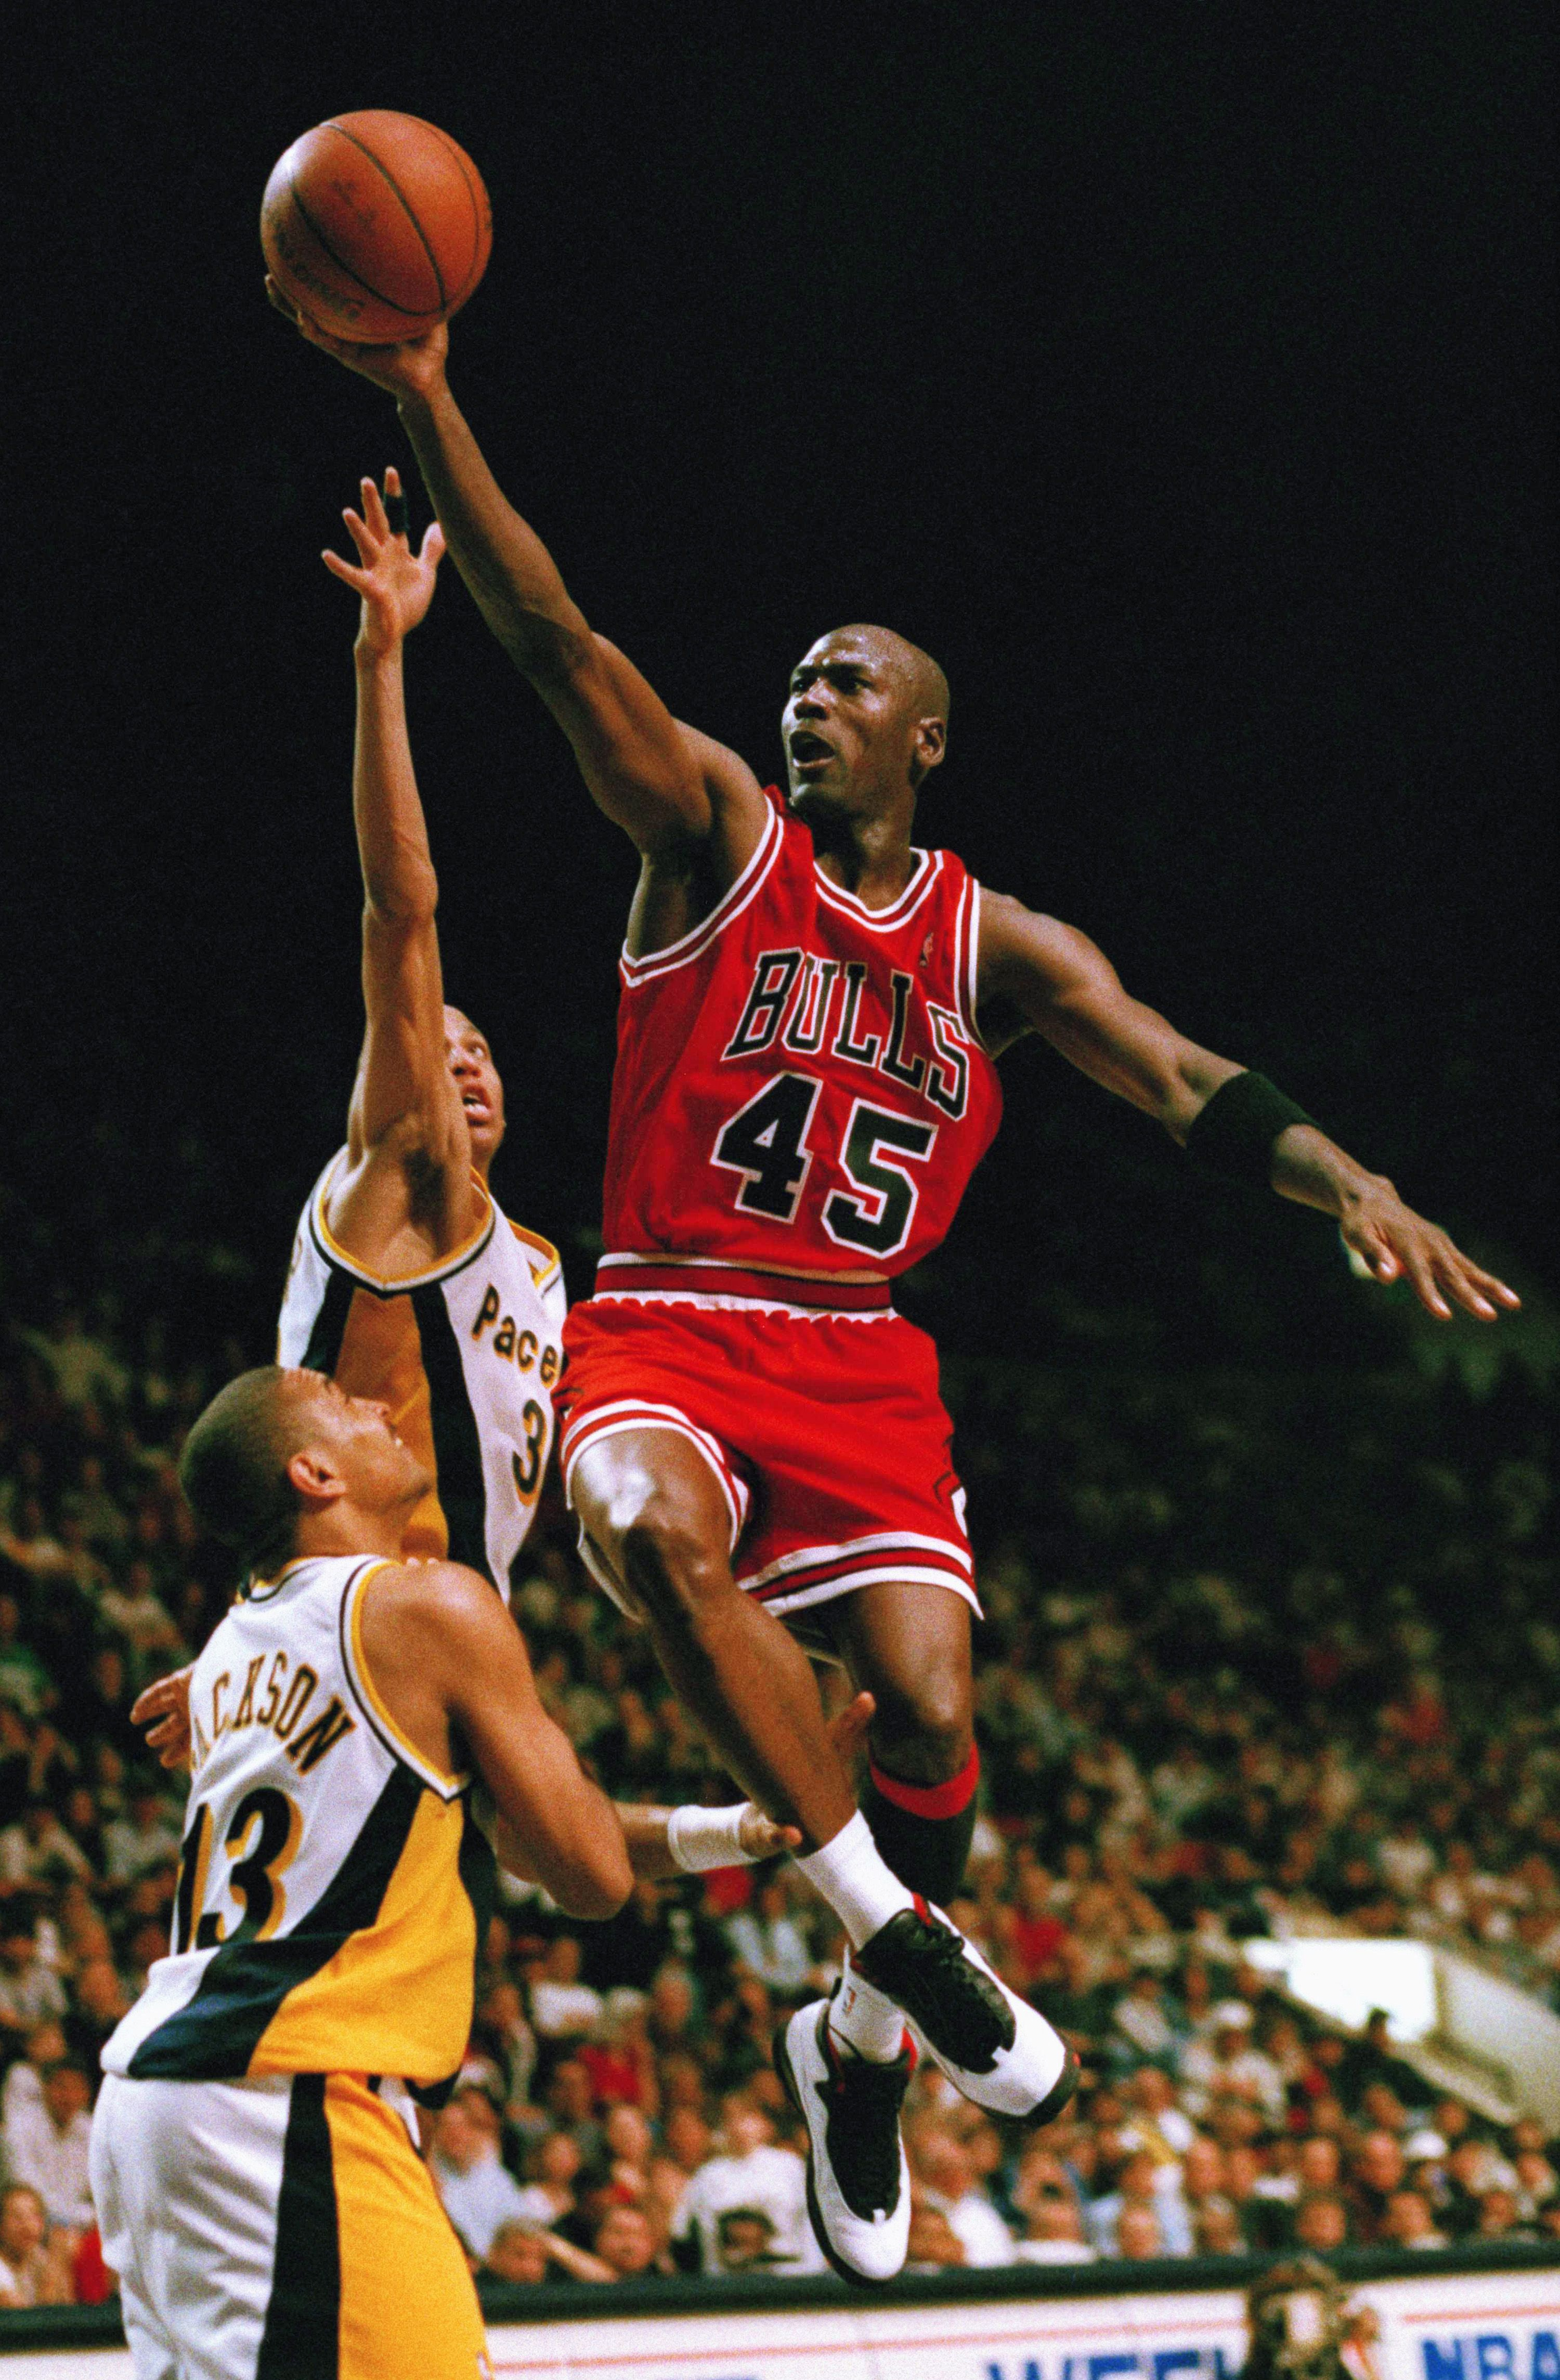 """a biography o michael jordan a nba player Michael jordan ended his playing career 11 years ago, but he is still one  nba  star — """"jerry west: the life and legend of a basketball icon."""